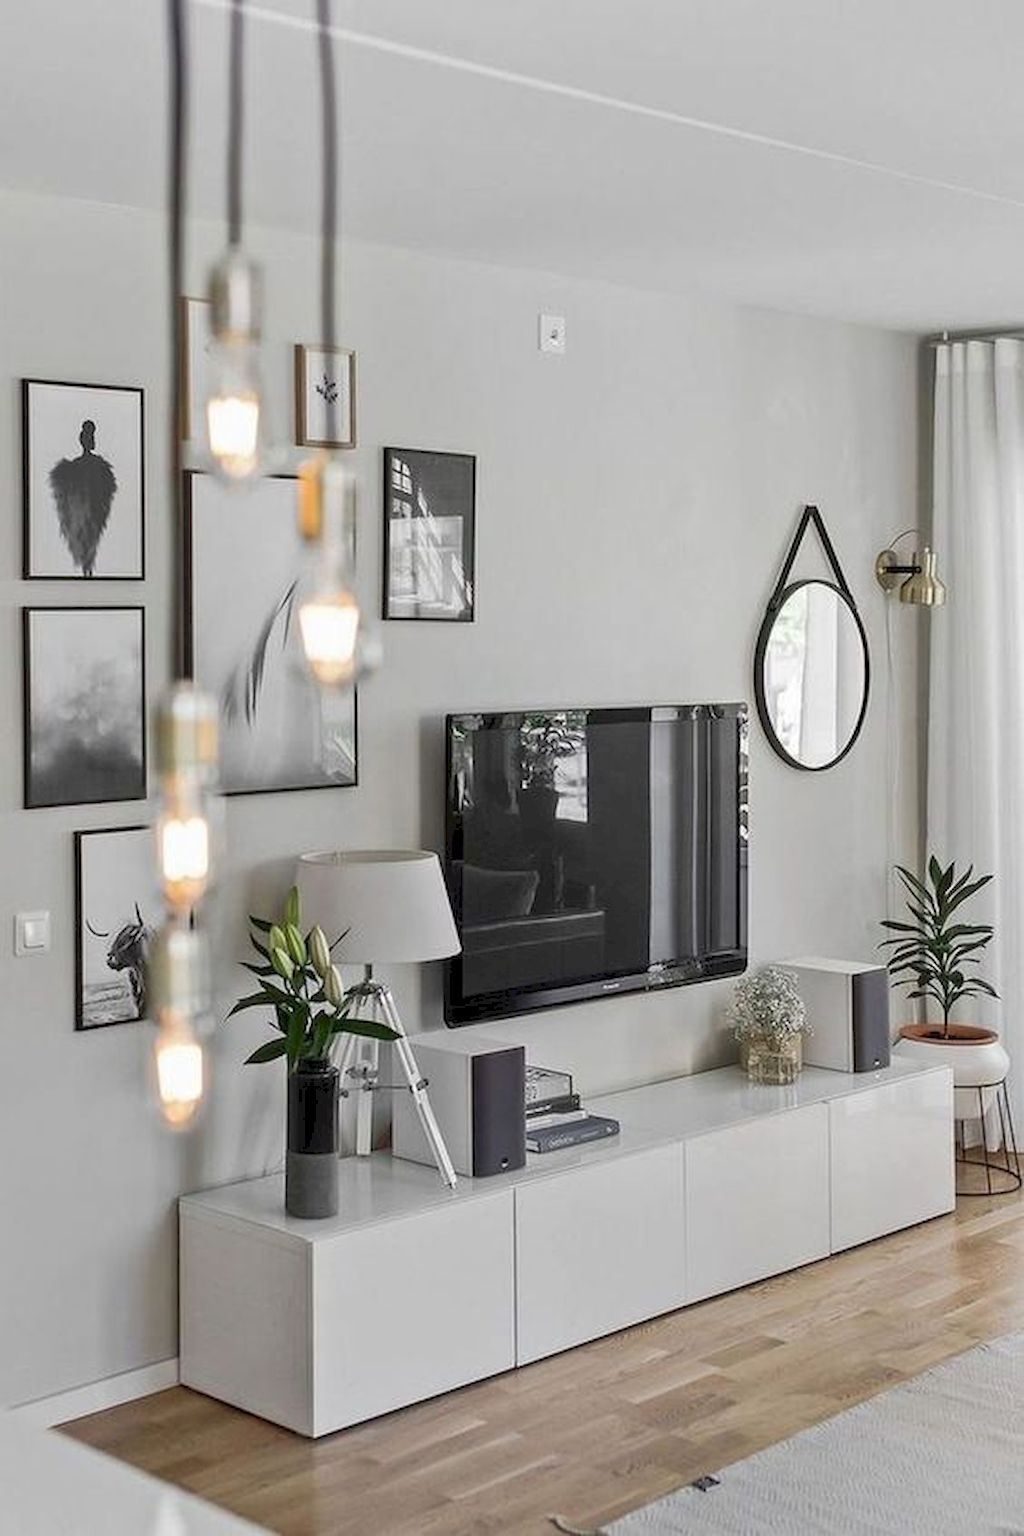 75 Simple and Stylish Scandinavian Living Room Decorating Ideas #apartmentlivingrooms